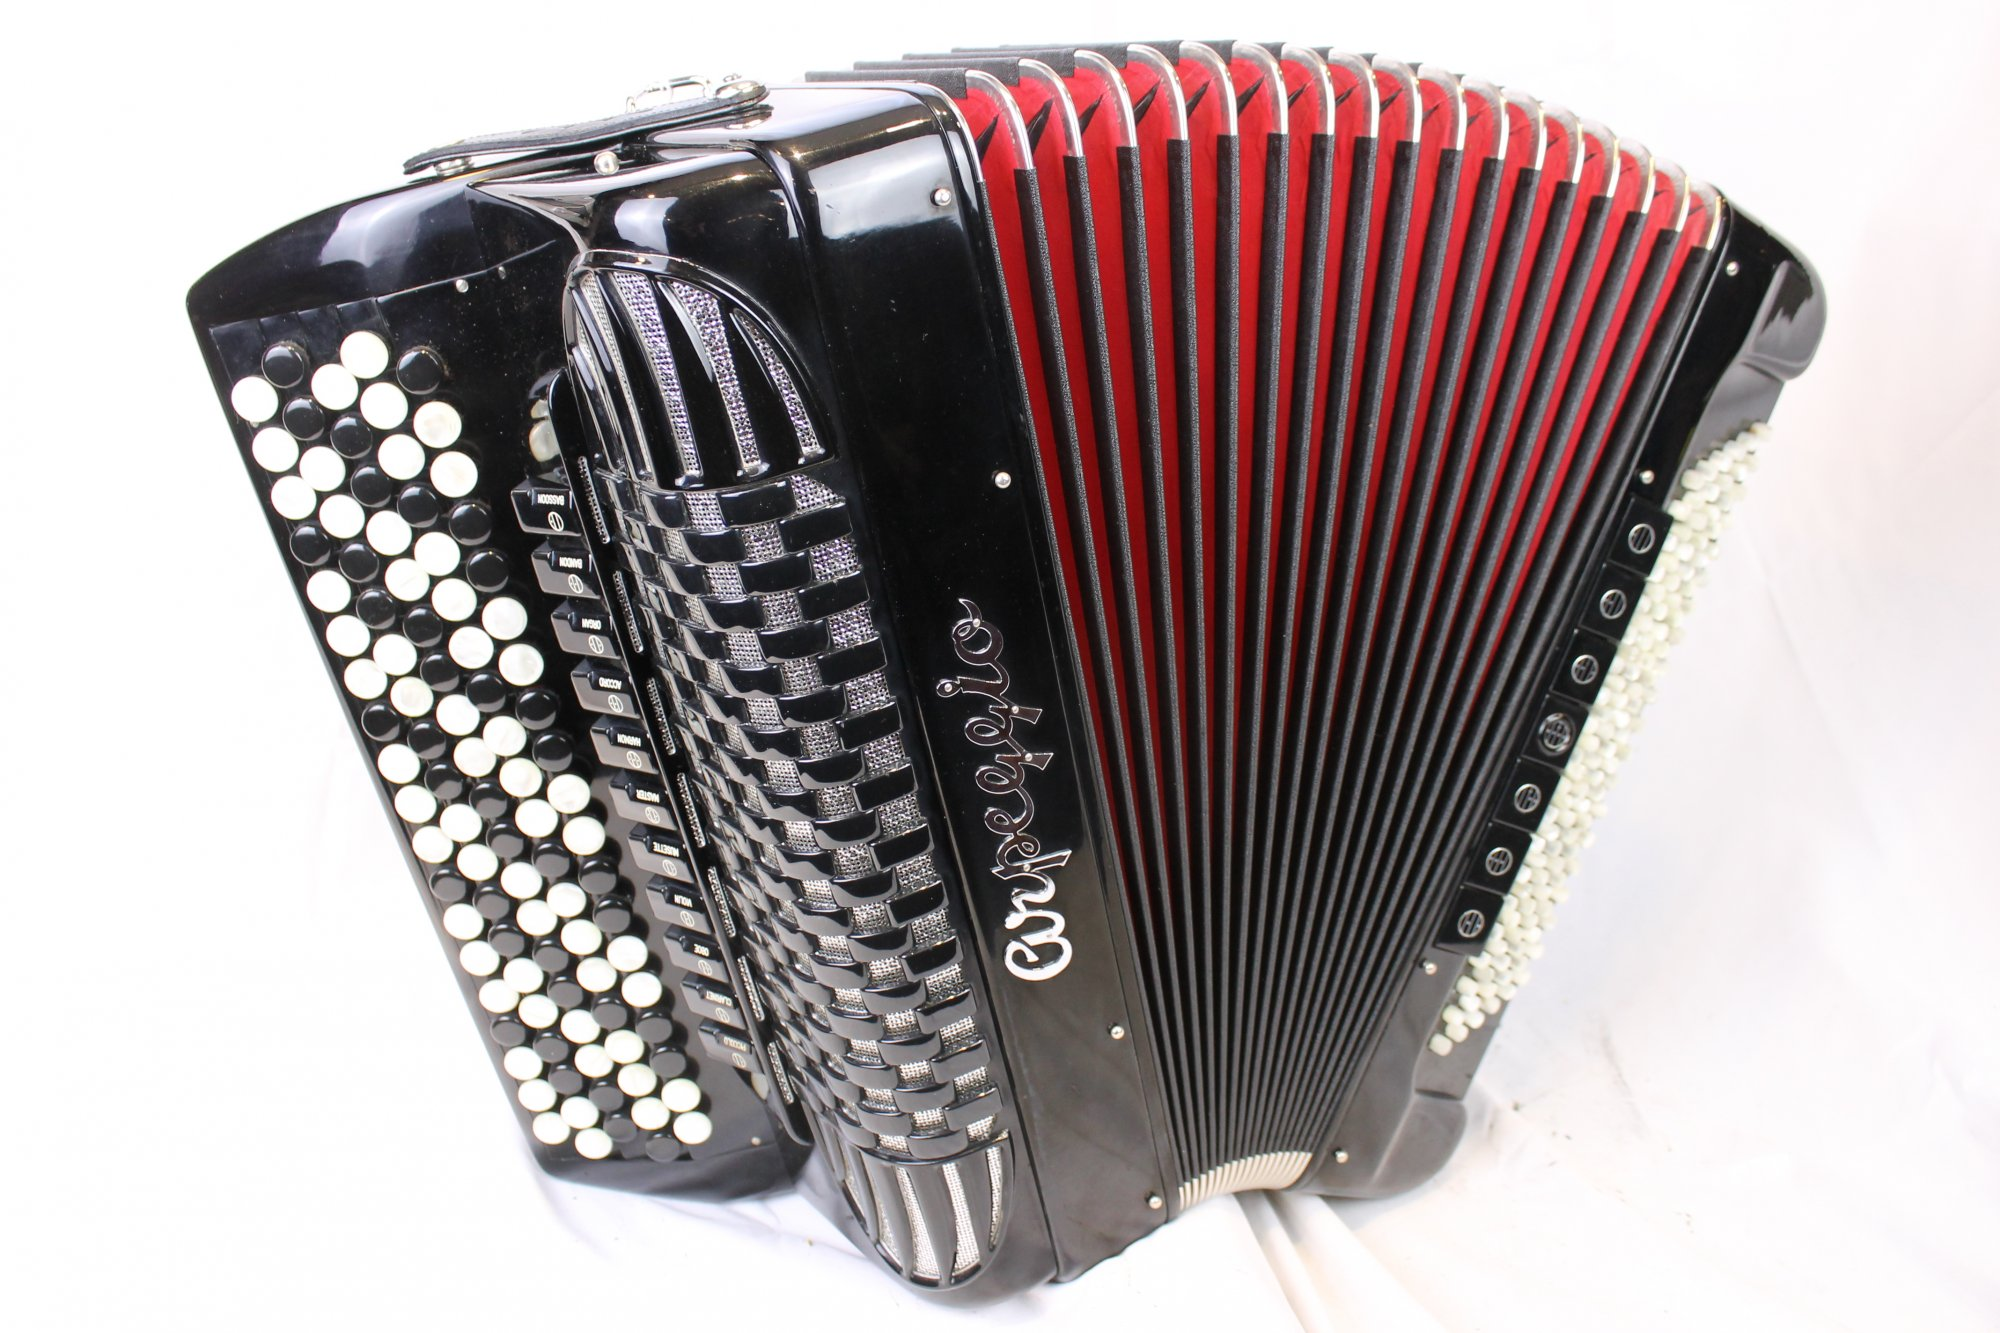 4040 - Like New Black Arpeggio Chromatic Button Accordion B System LMMH 92 120